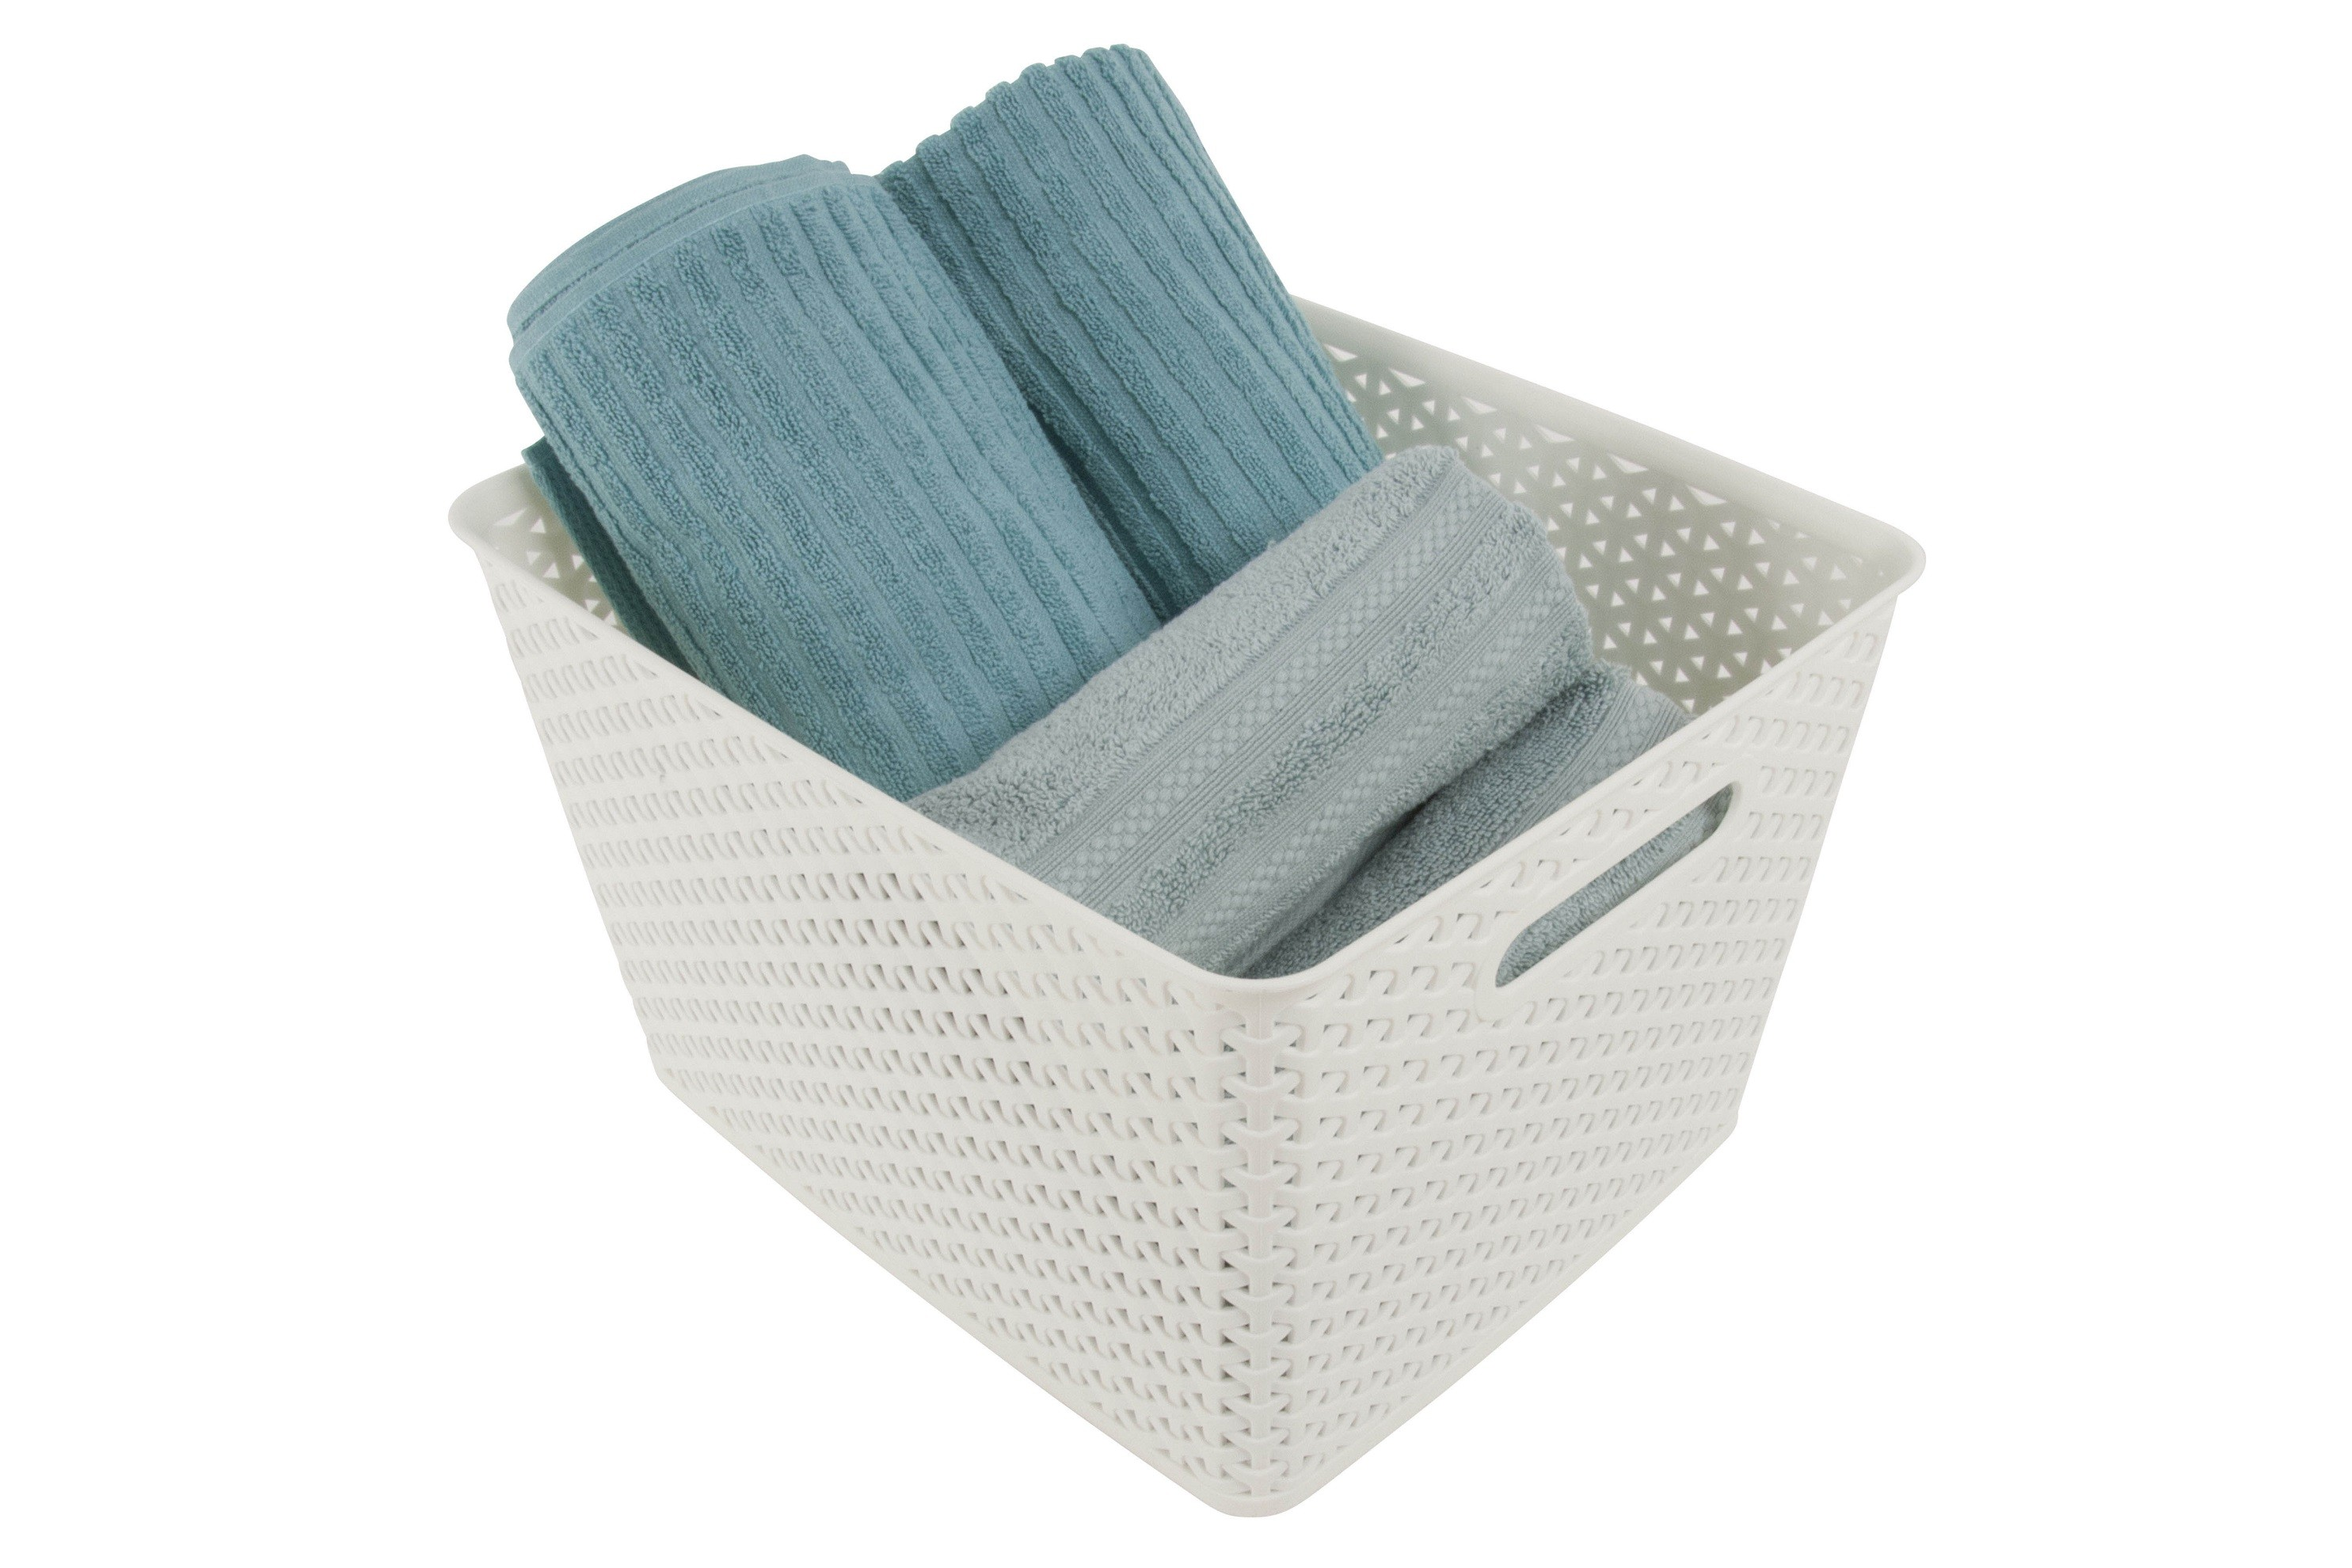 Rattan Style Basket Large from Storage Box